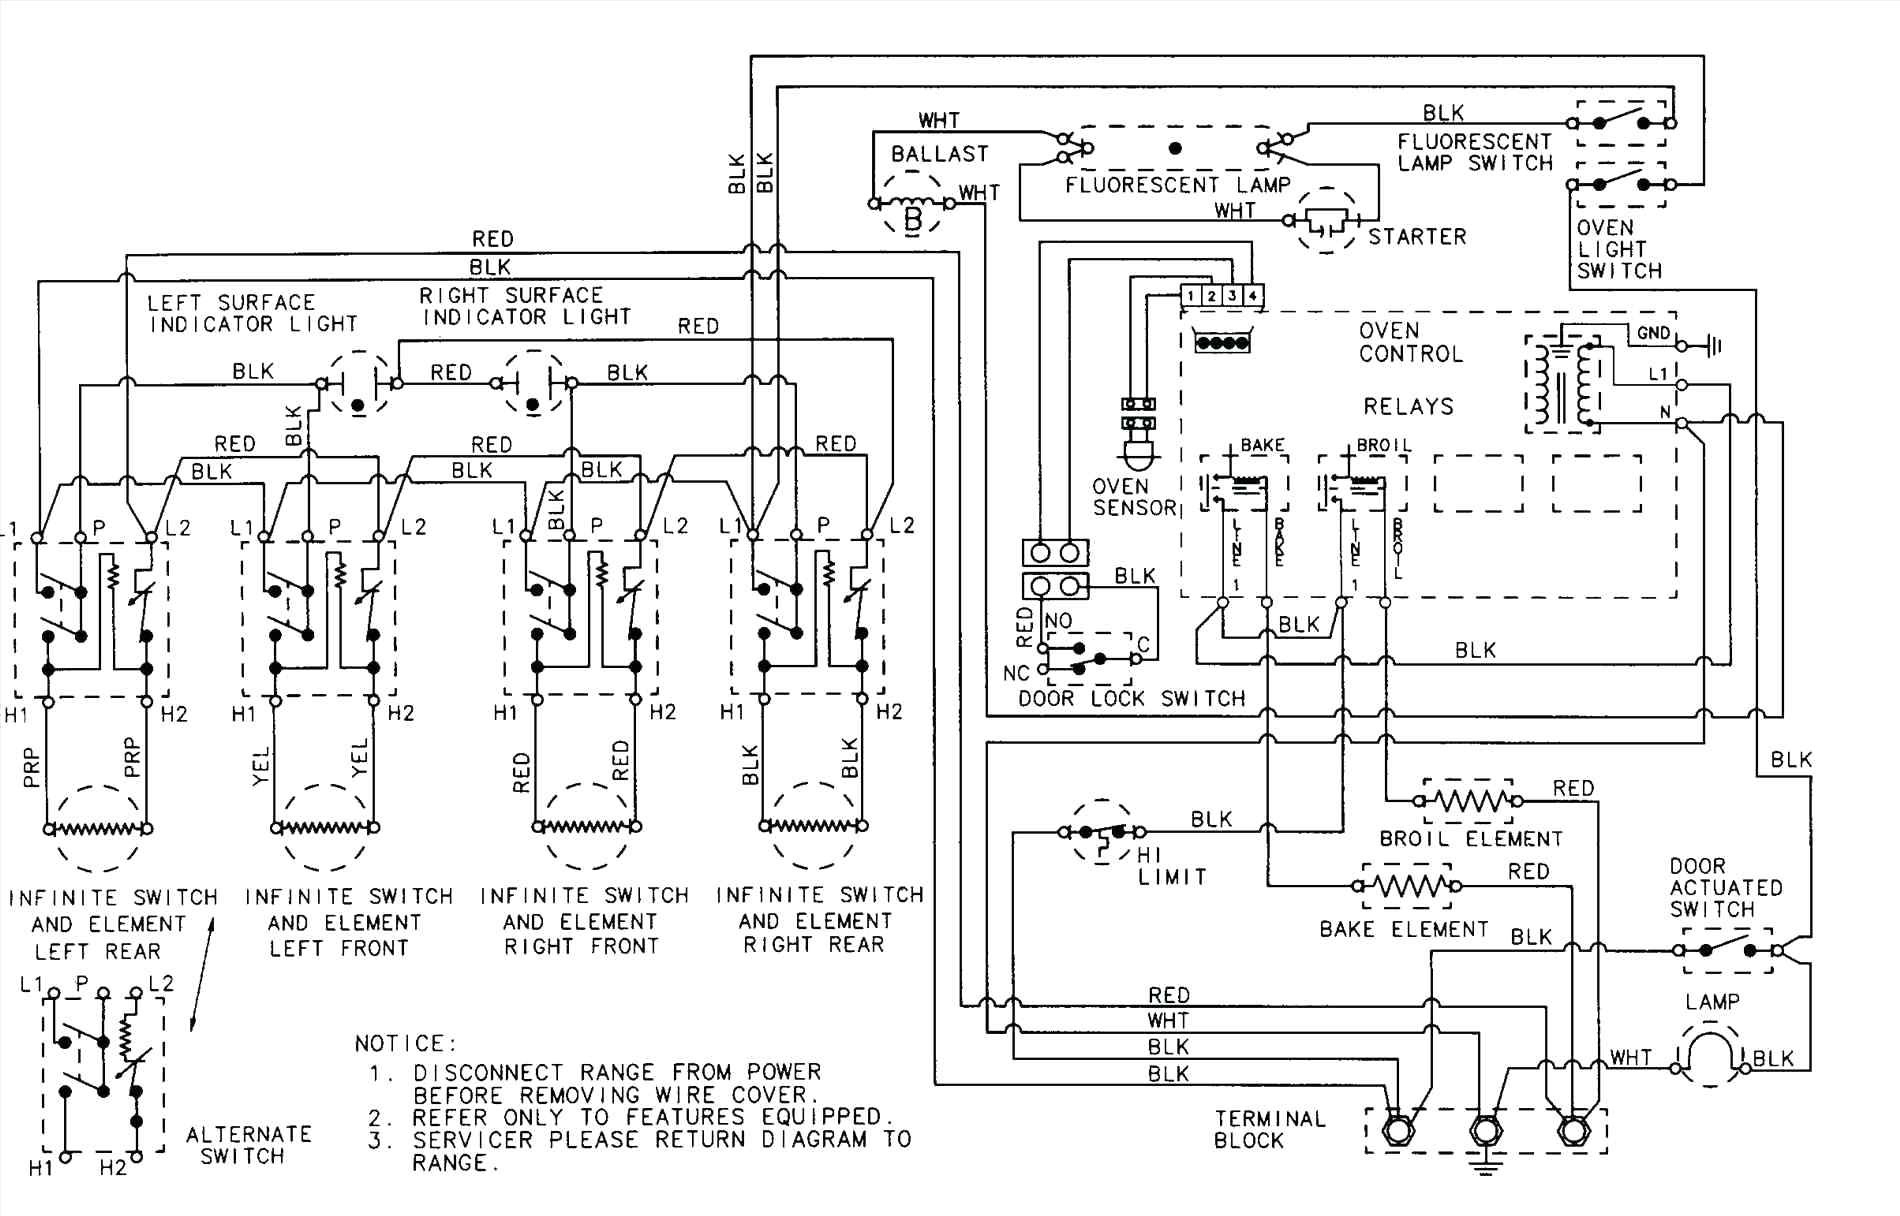 ge dryer start switch wiring diagram Collection-wiring diagram ge dryer timer new ge sensor wiring diagram wiring rh kobecityinfo ge dryer timer switch wiring diagram GE Dryer Heating Element 8-t